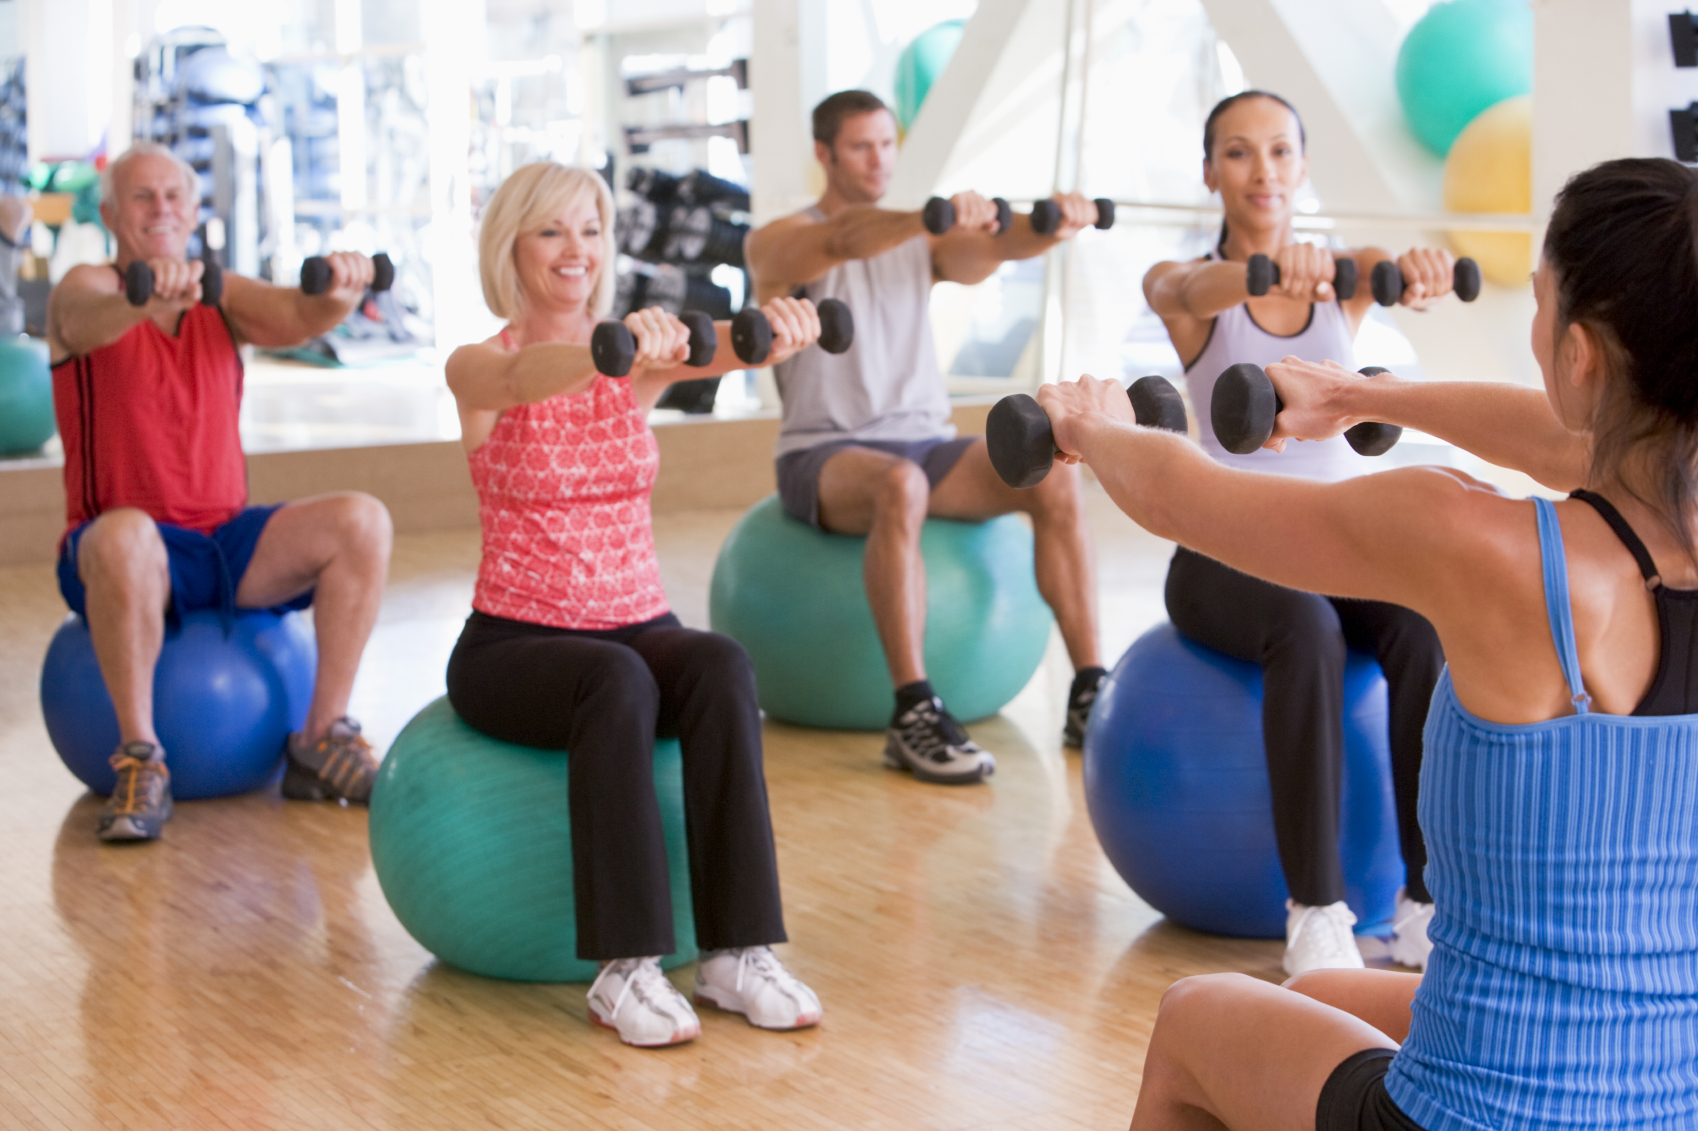 Low Back Pain Sufferers Benefit from Early Physical Therapy Intervention